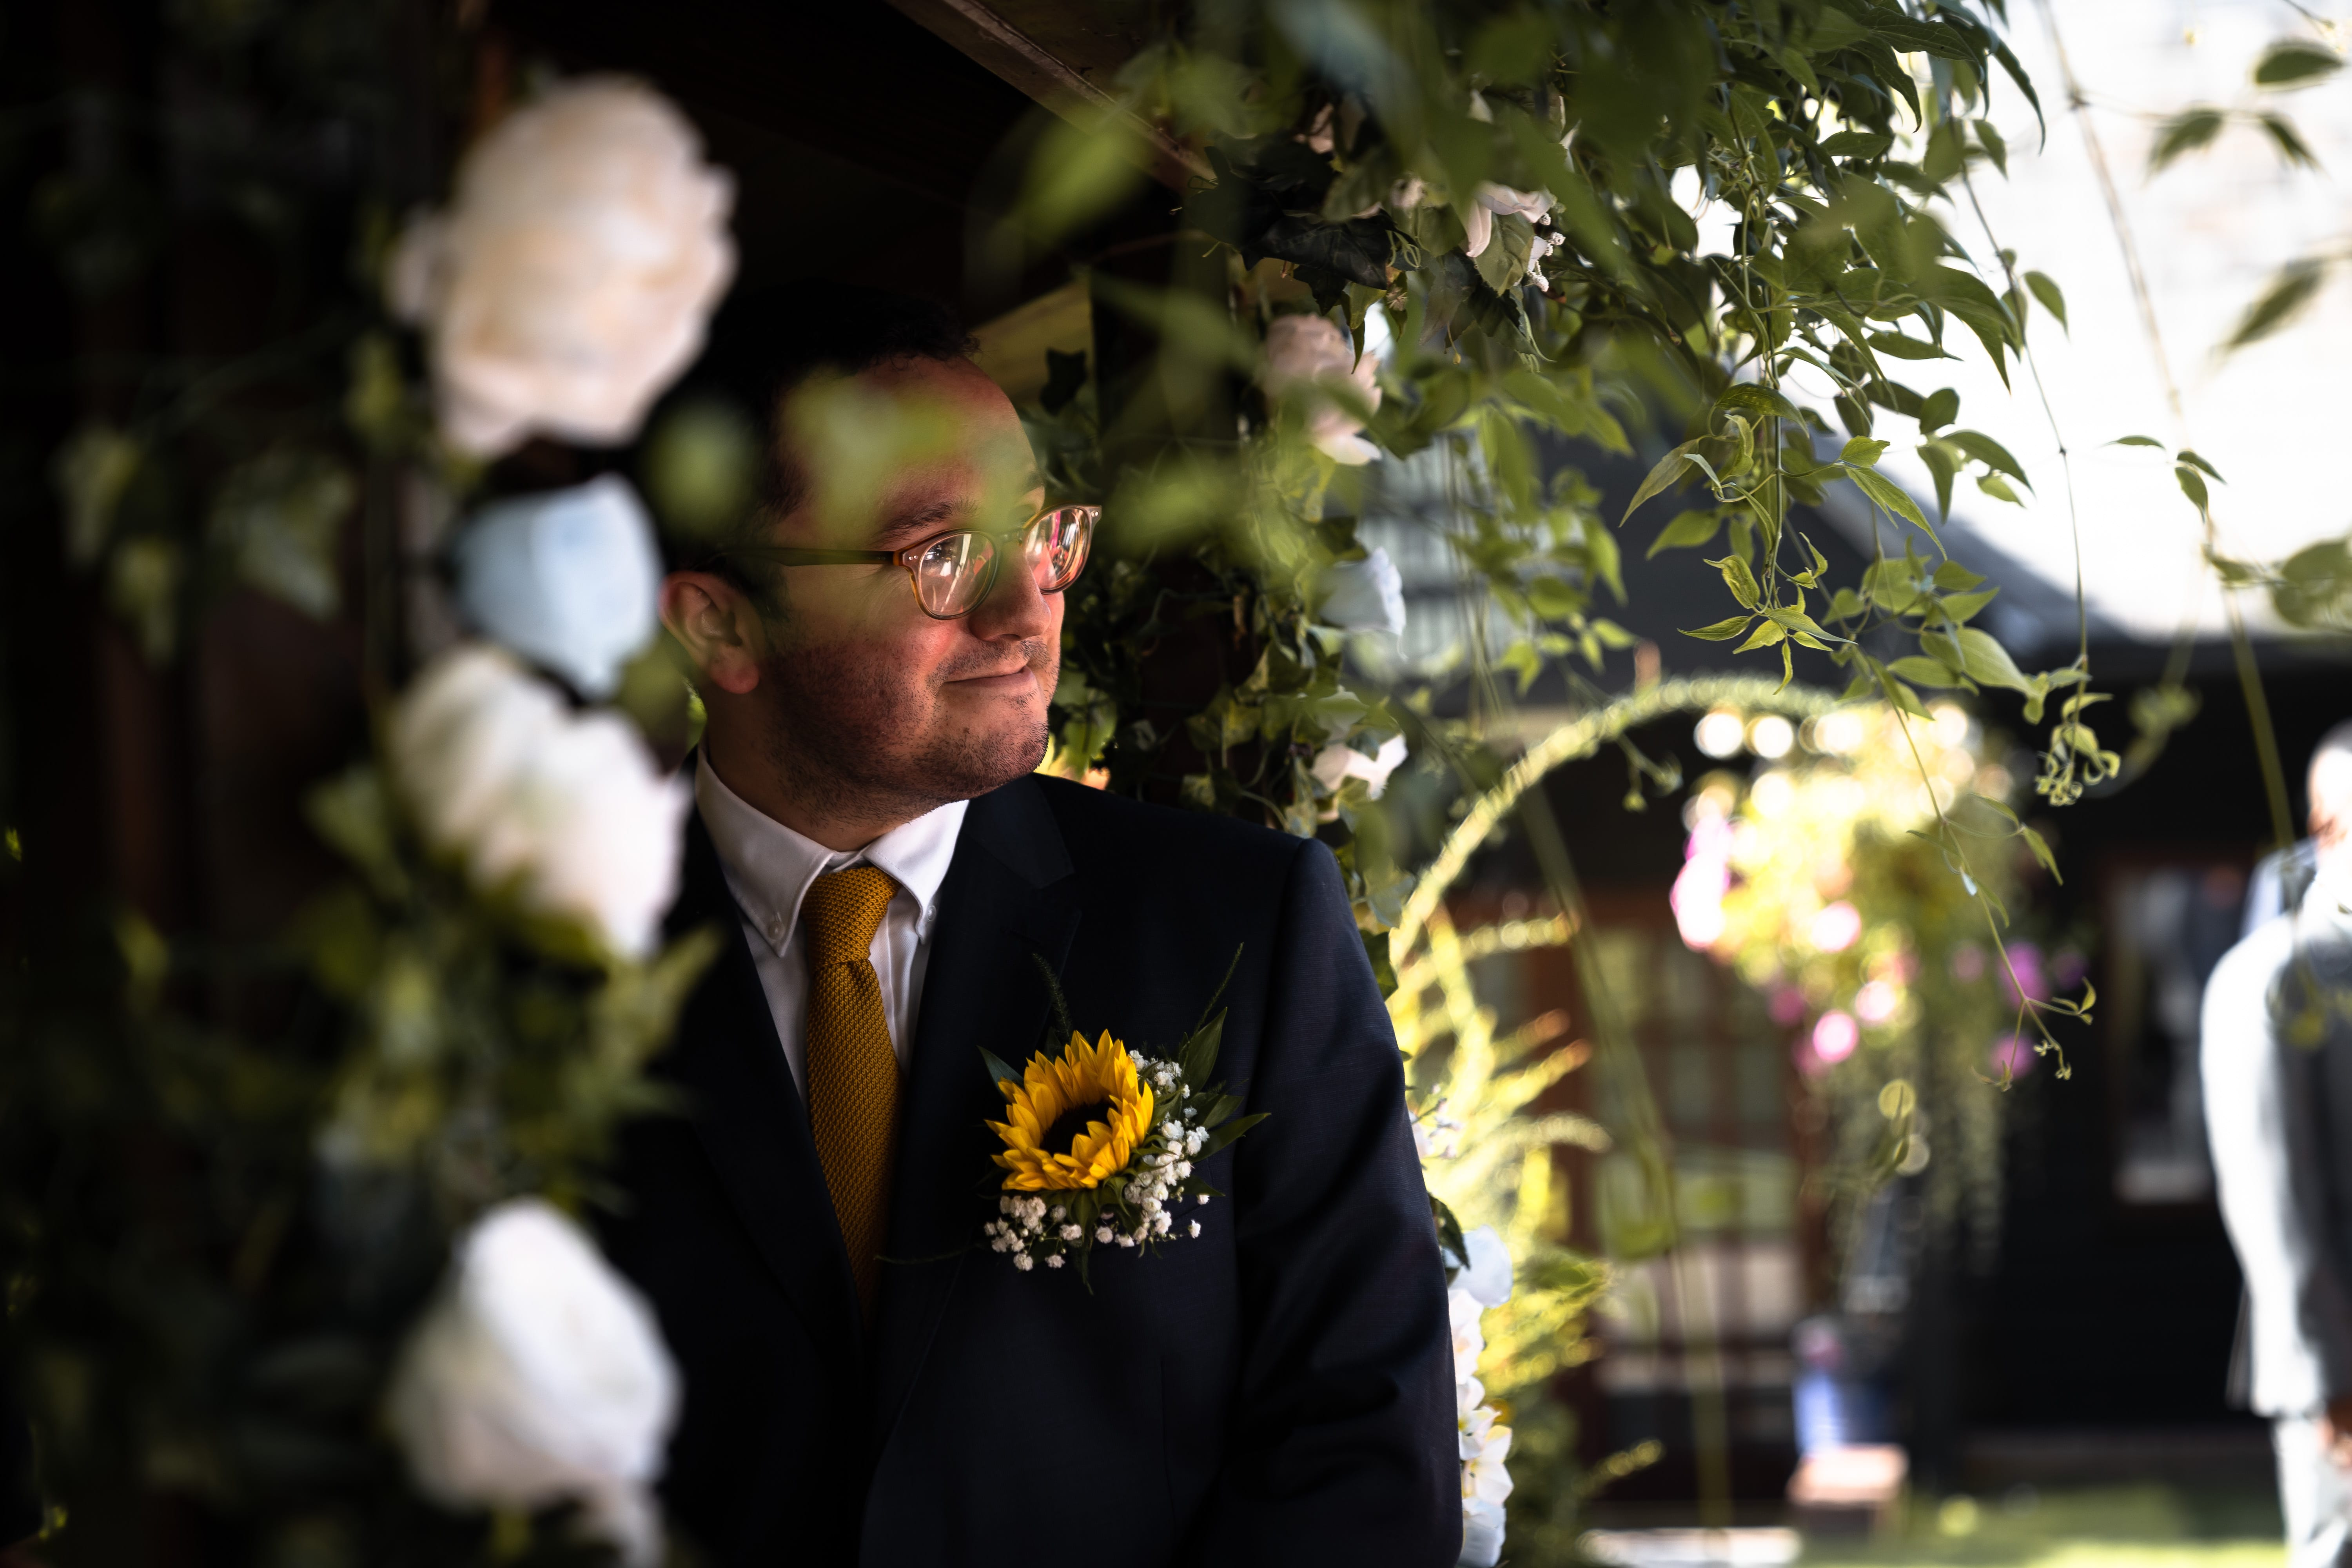 Documentary Wedding Photography - Nervous Groom